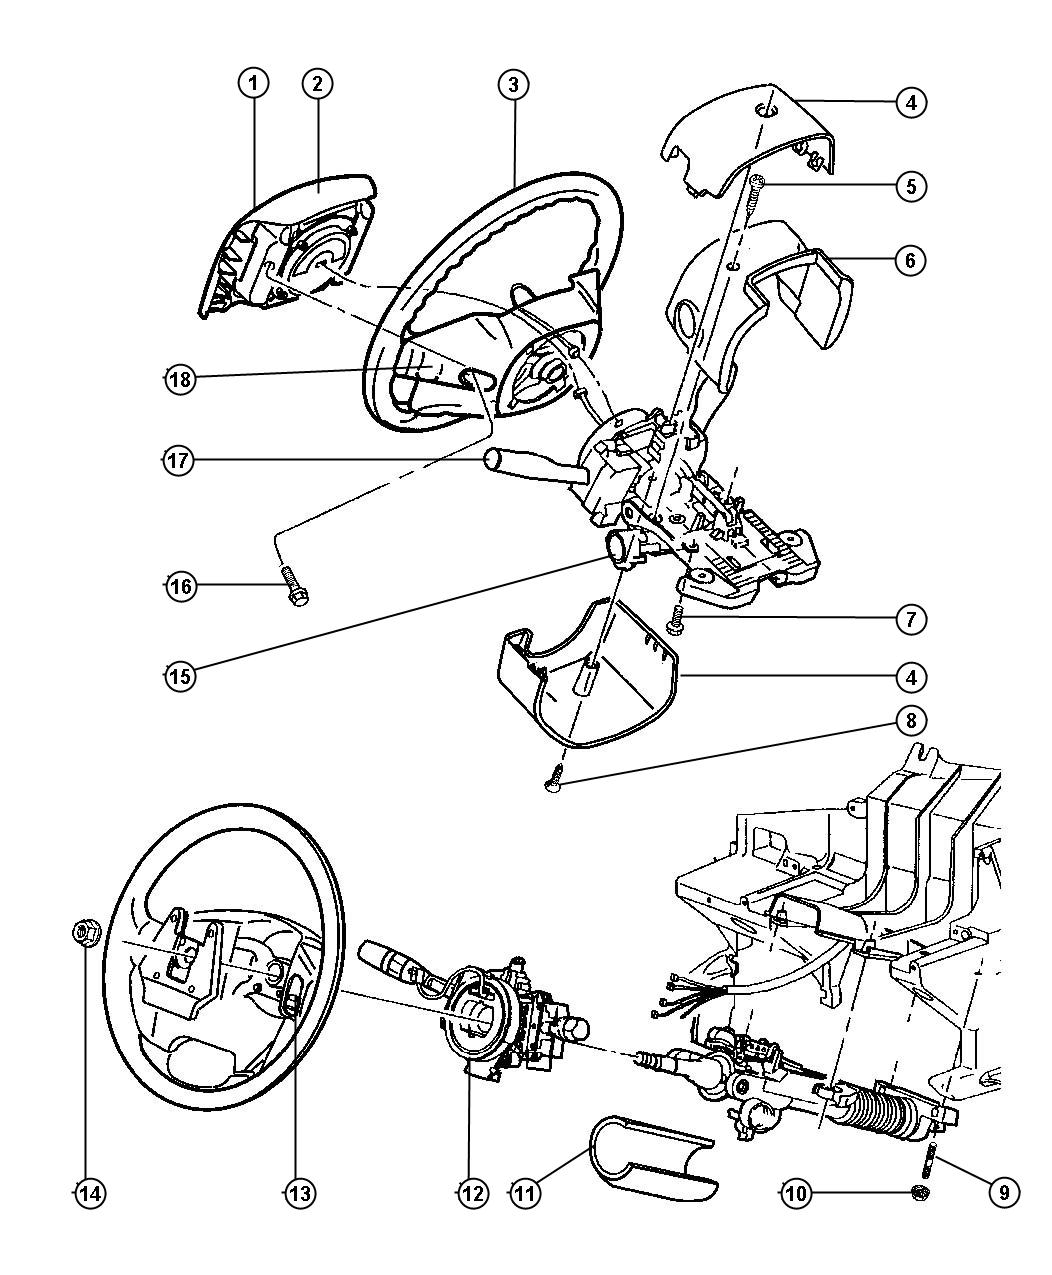 99 jeep grand cherokee laredo wiring diagram nuheat solo thermostat clockspring air bag clock spring 01